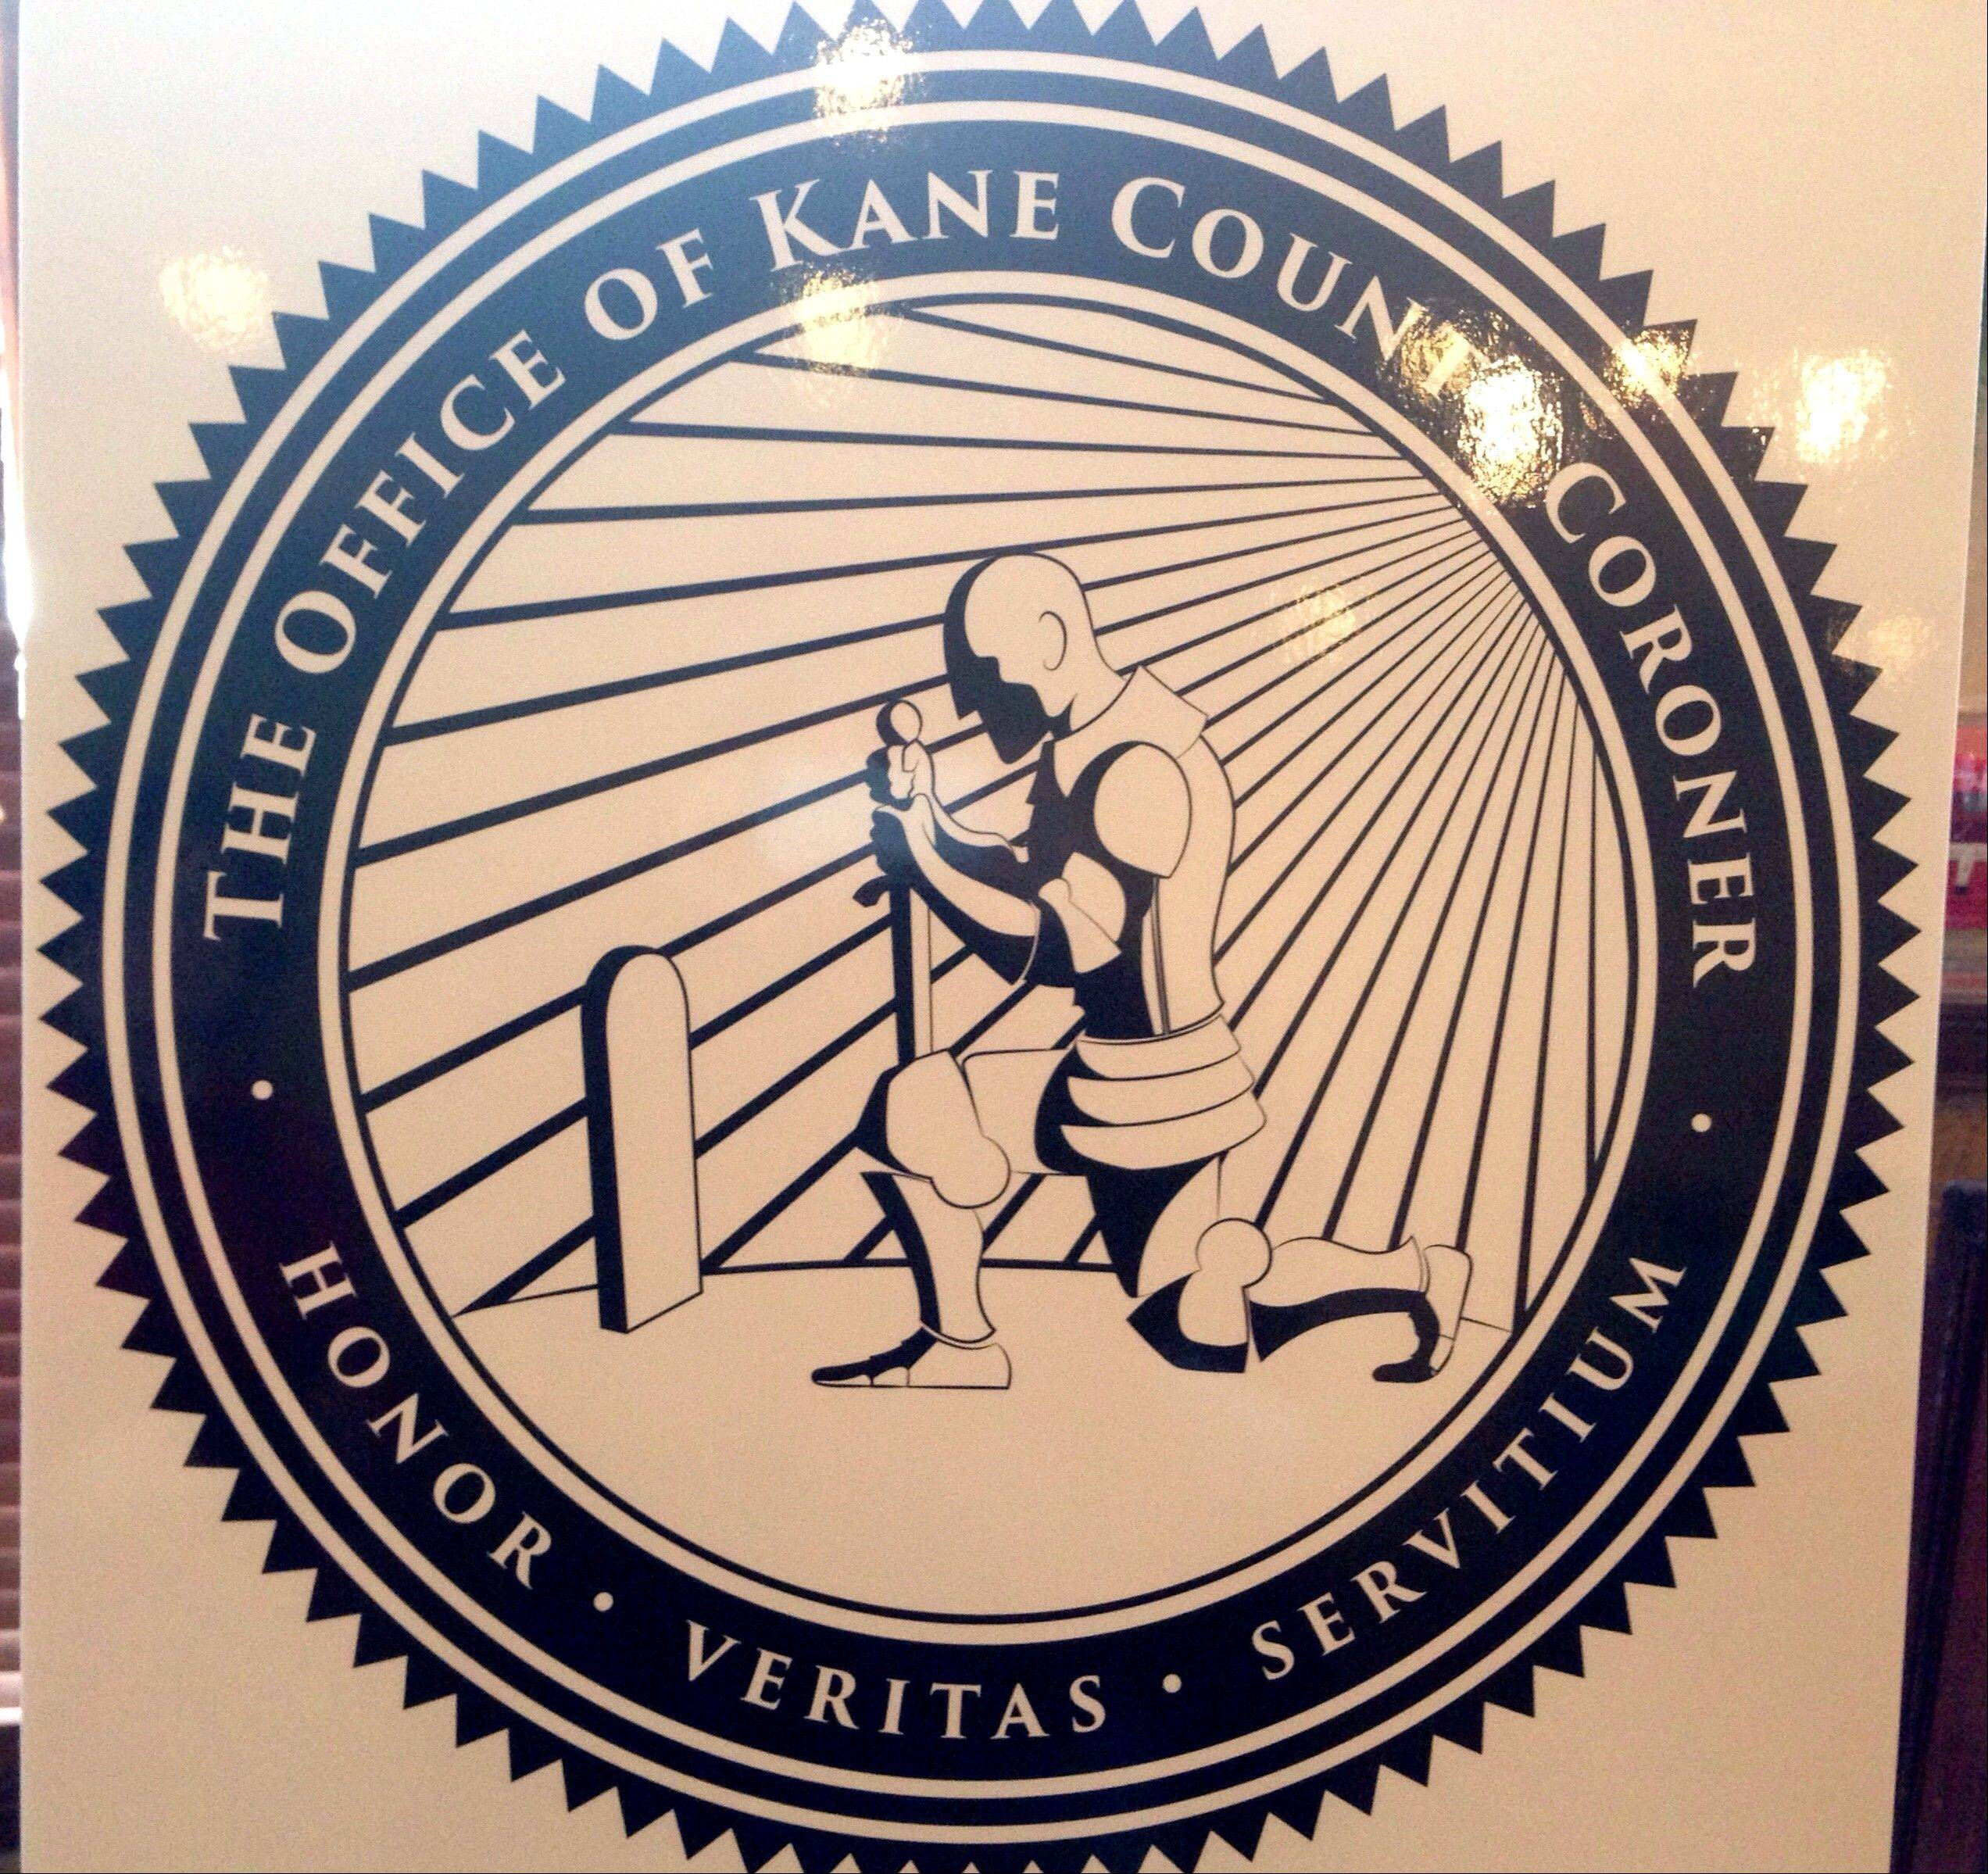 The Kane County Coroner's office unveiled a new logo Thursday designed to create better understanding of the office's mission.